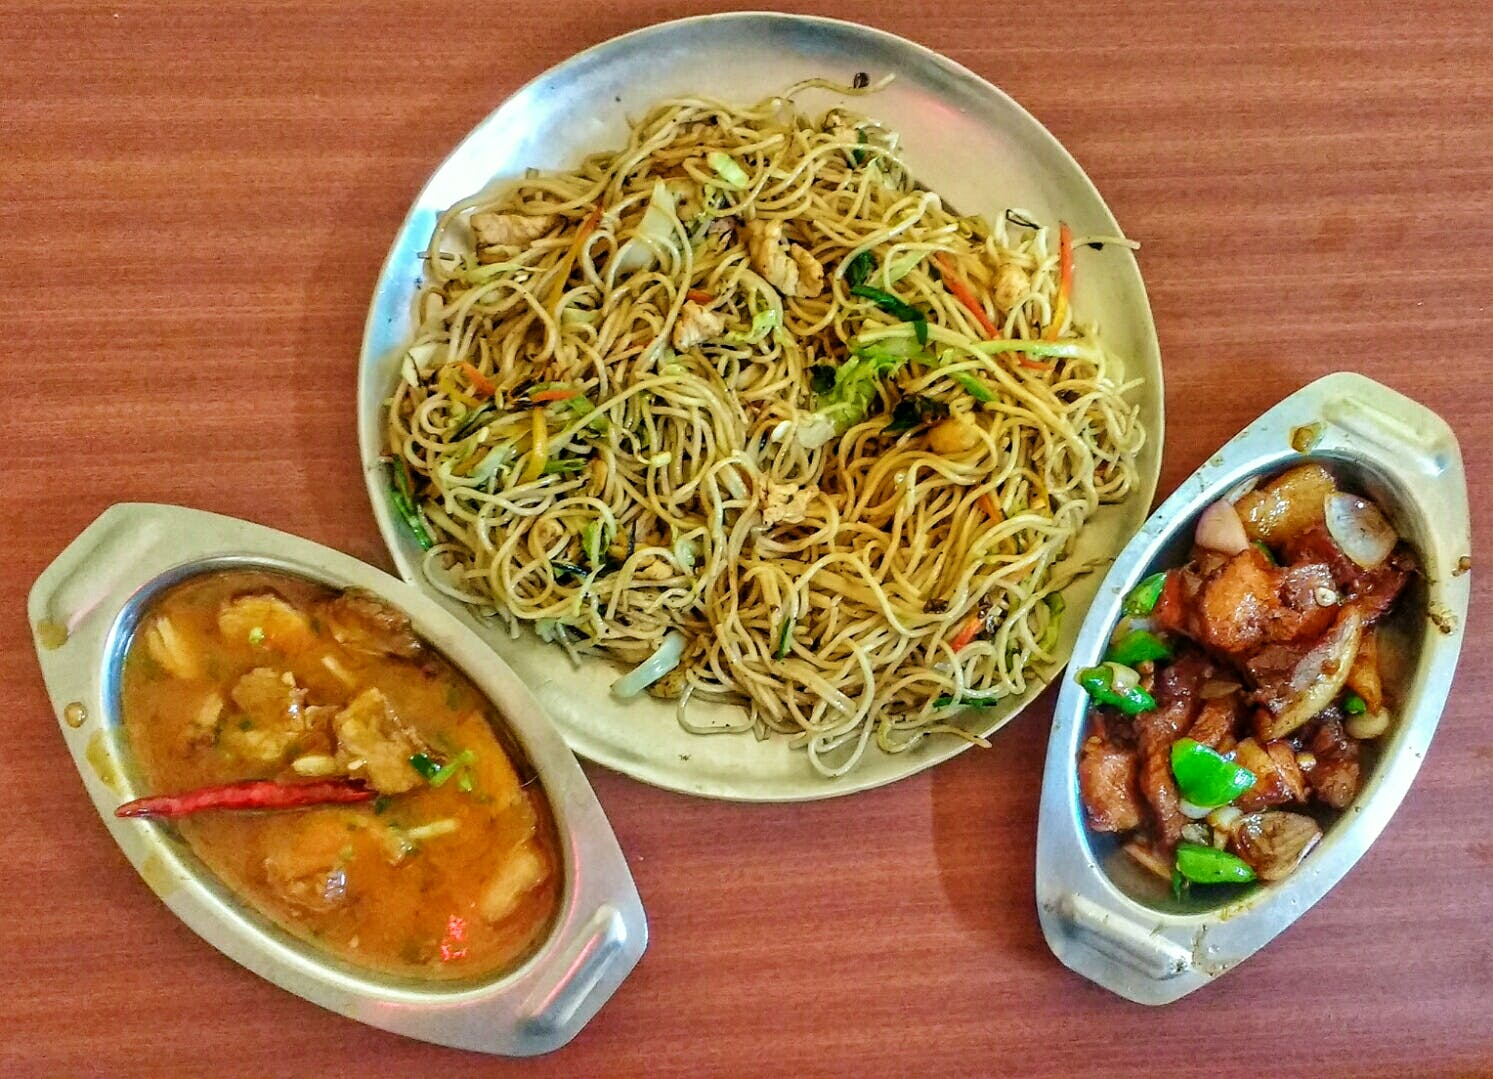 Dish,Cuisine,Food,Chow mein,Noodle,Fried noodles,Ingredient,Hokkien mee,Chinese food,Singapore-style noodles